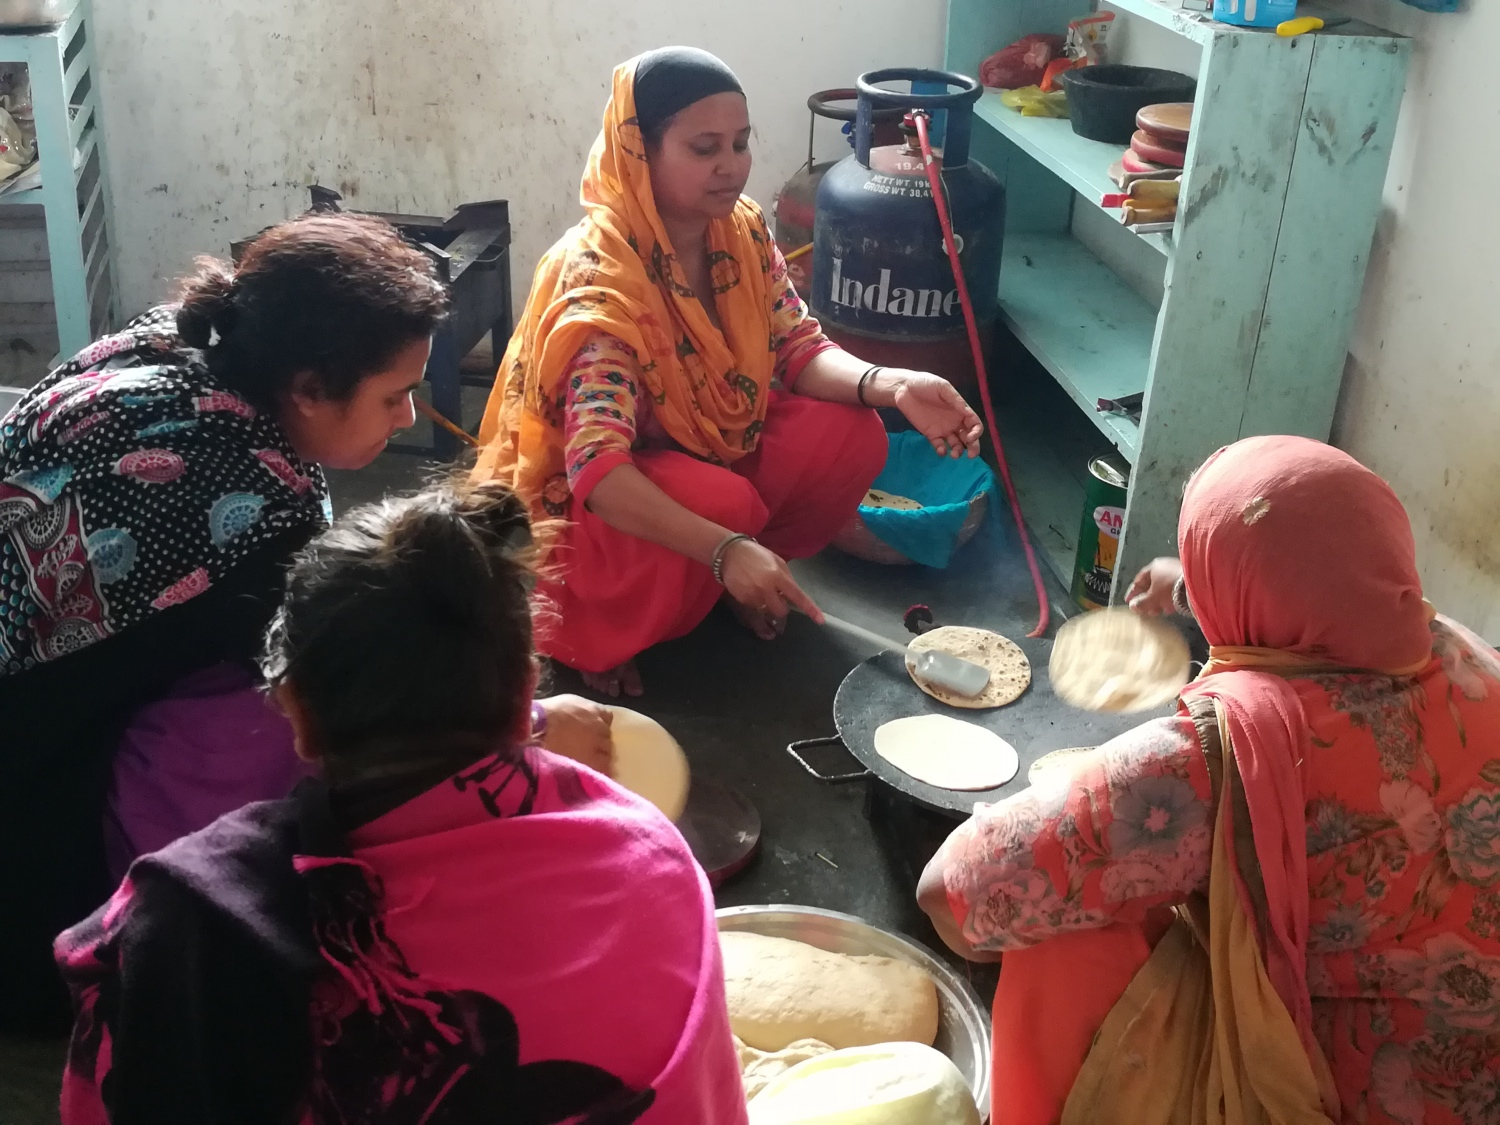 Women make chapatis at the community kitchen in the gurdwara.